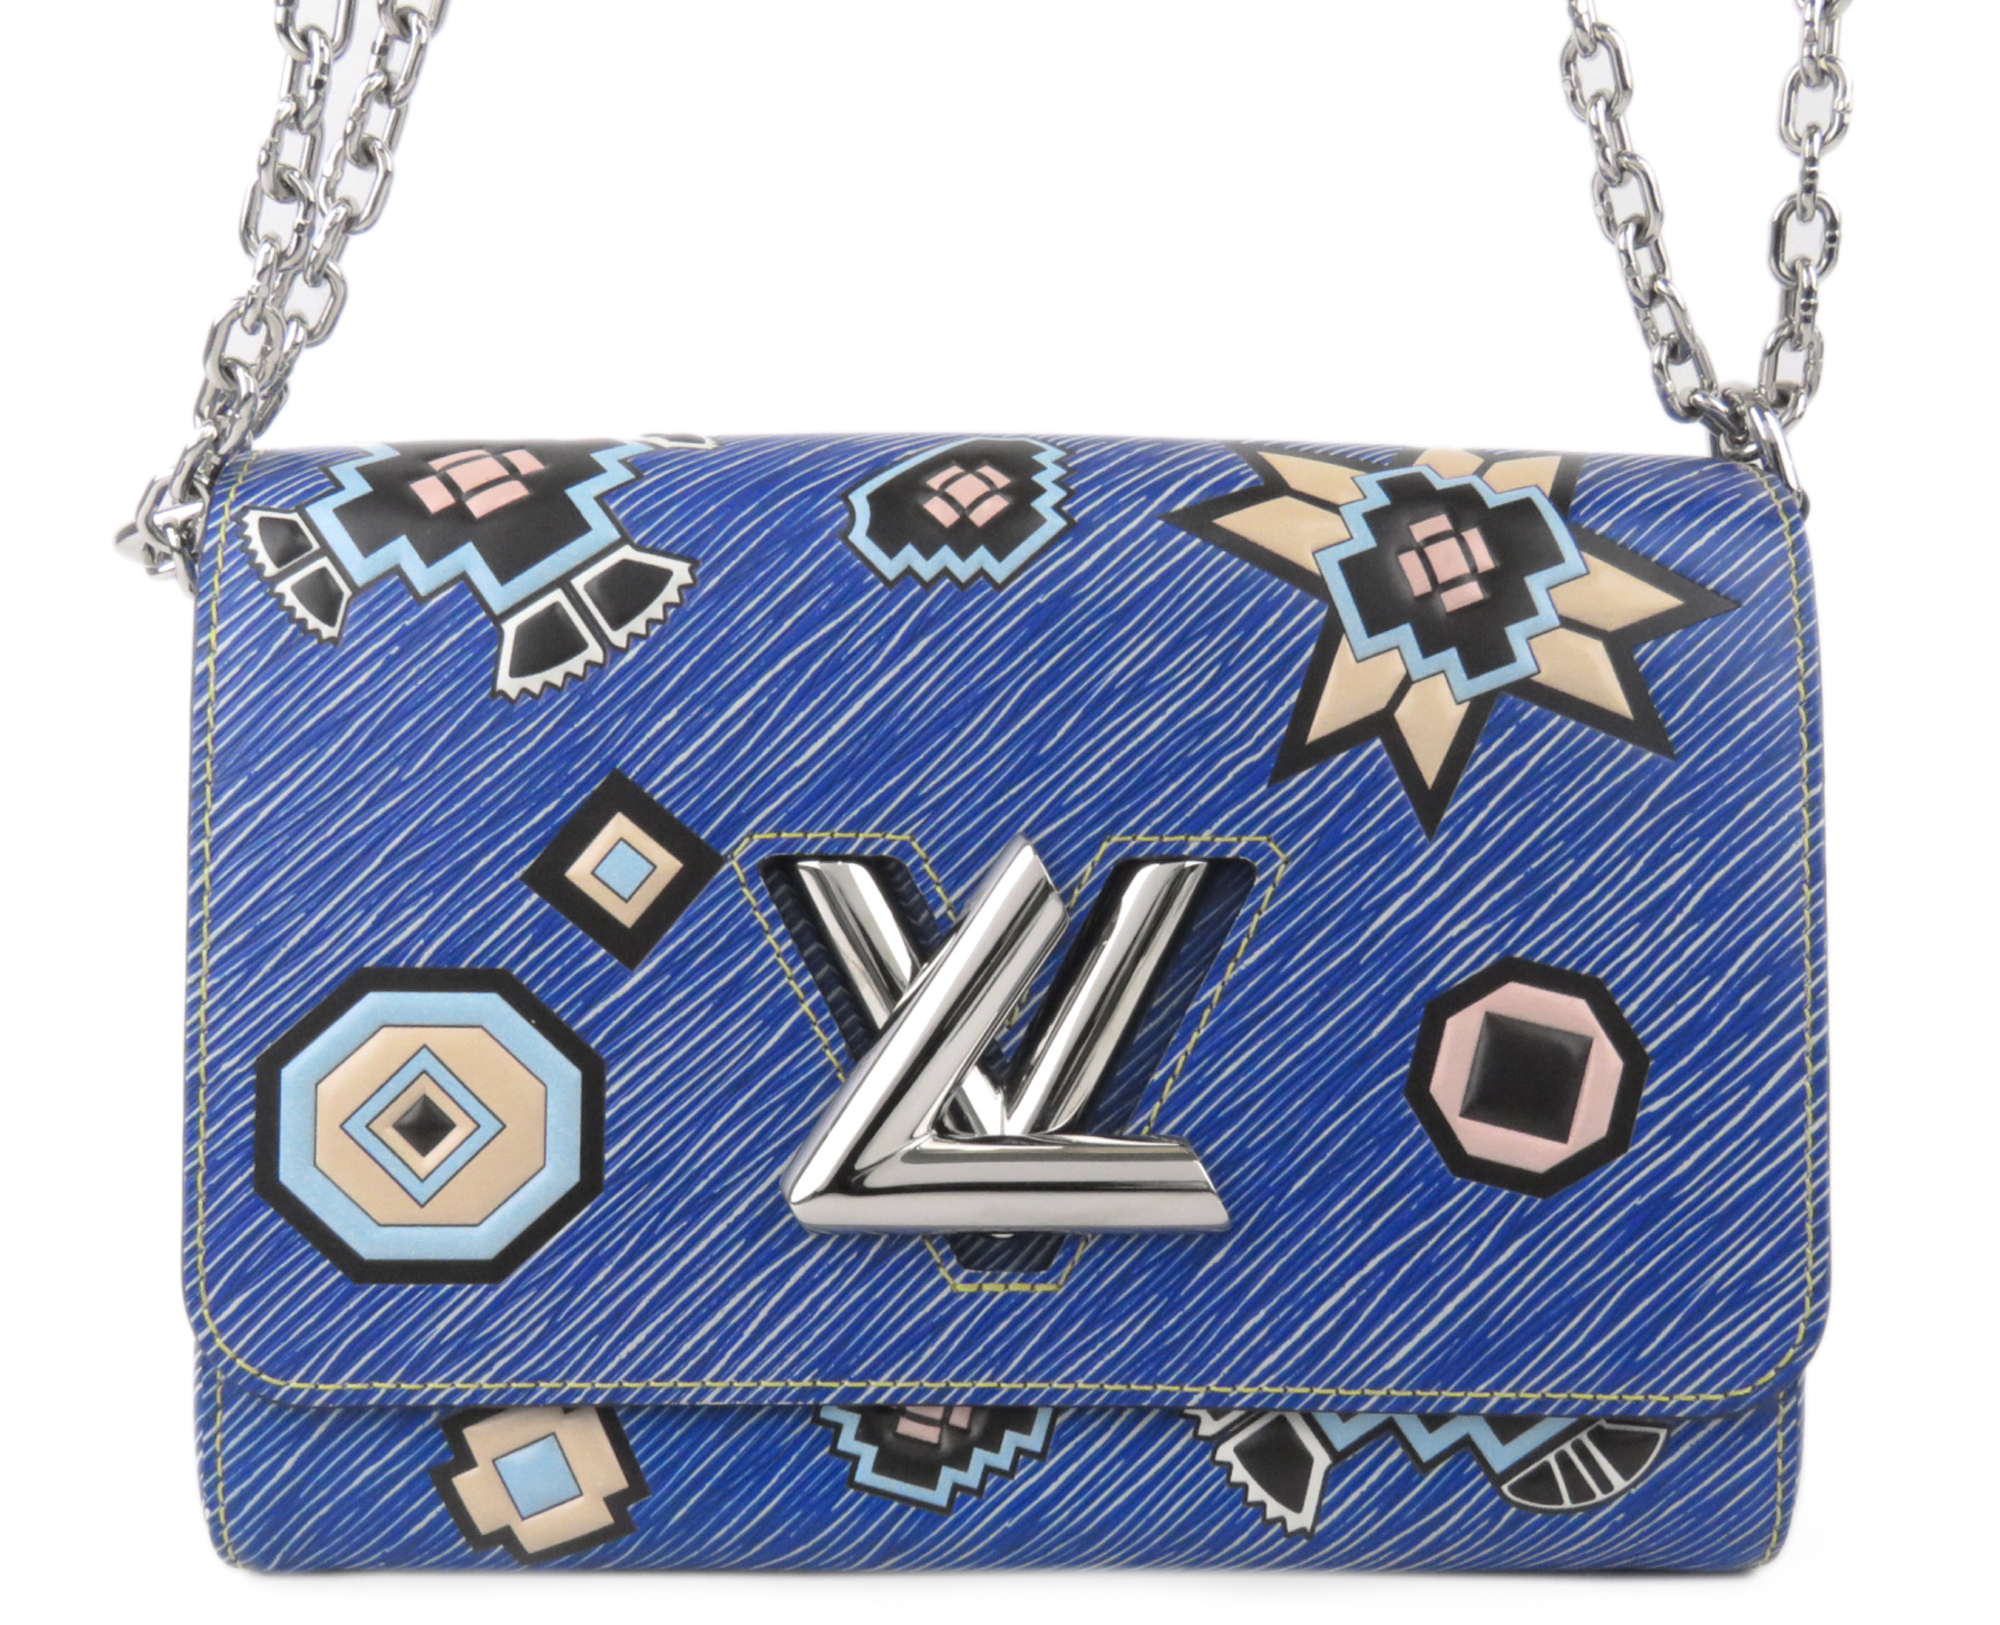 Louis Vuitton Epi Azteque Twist MM